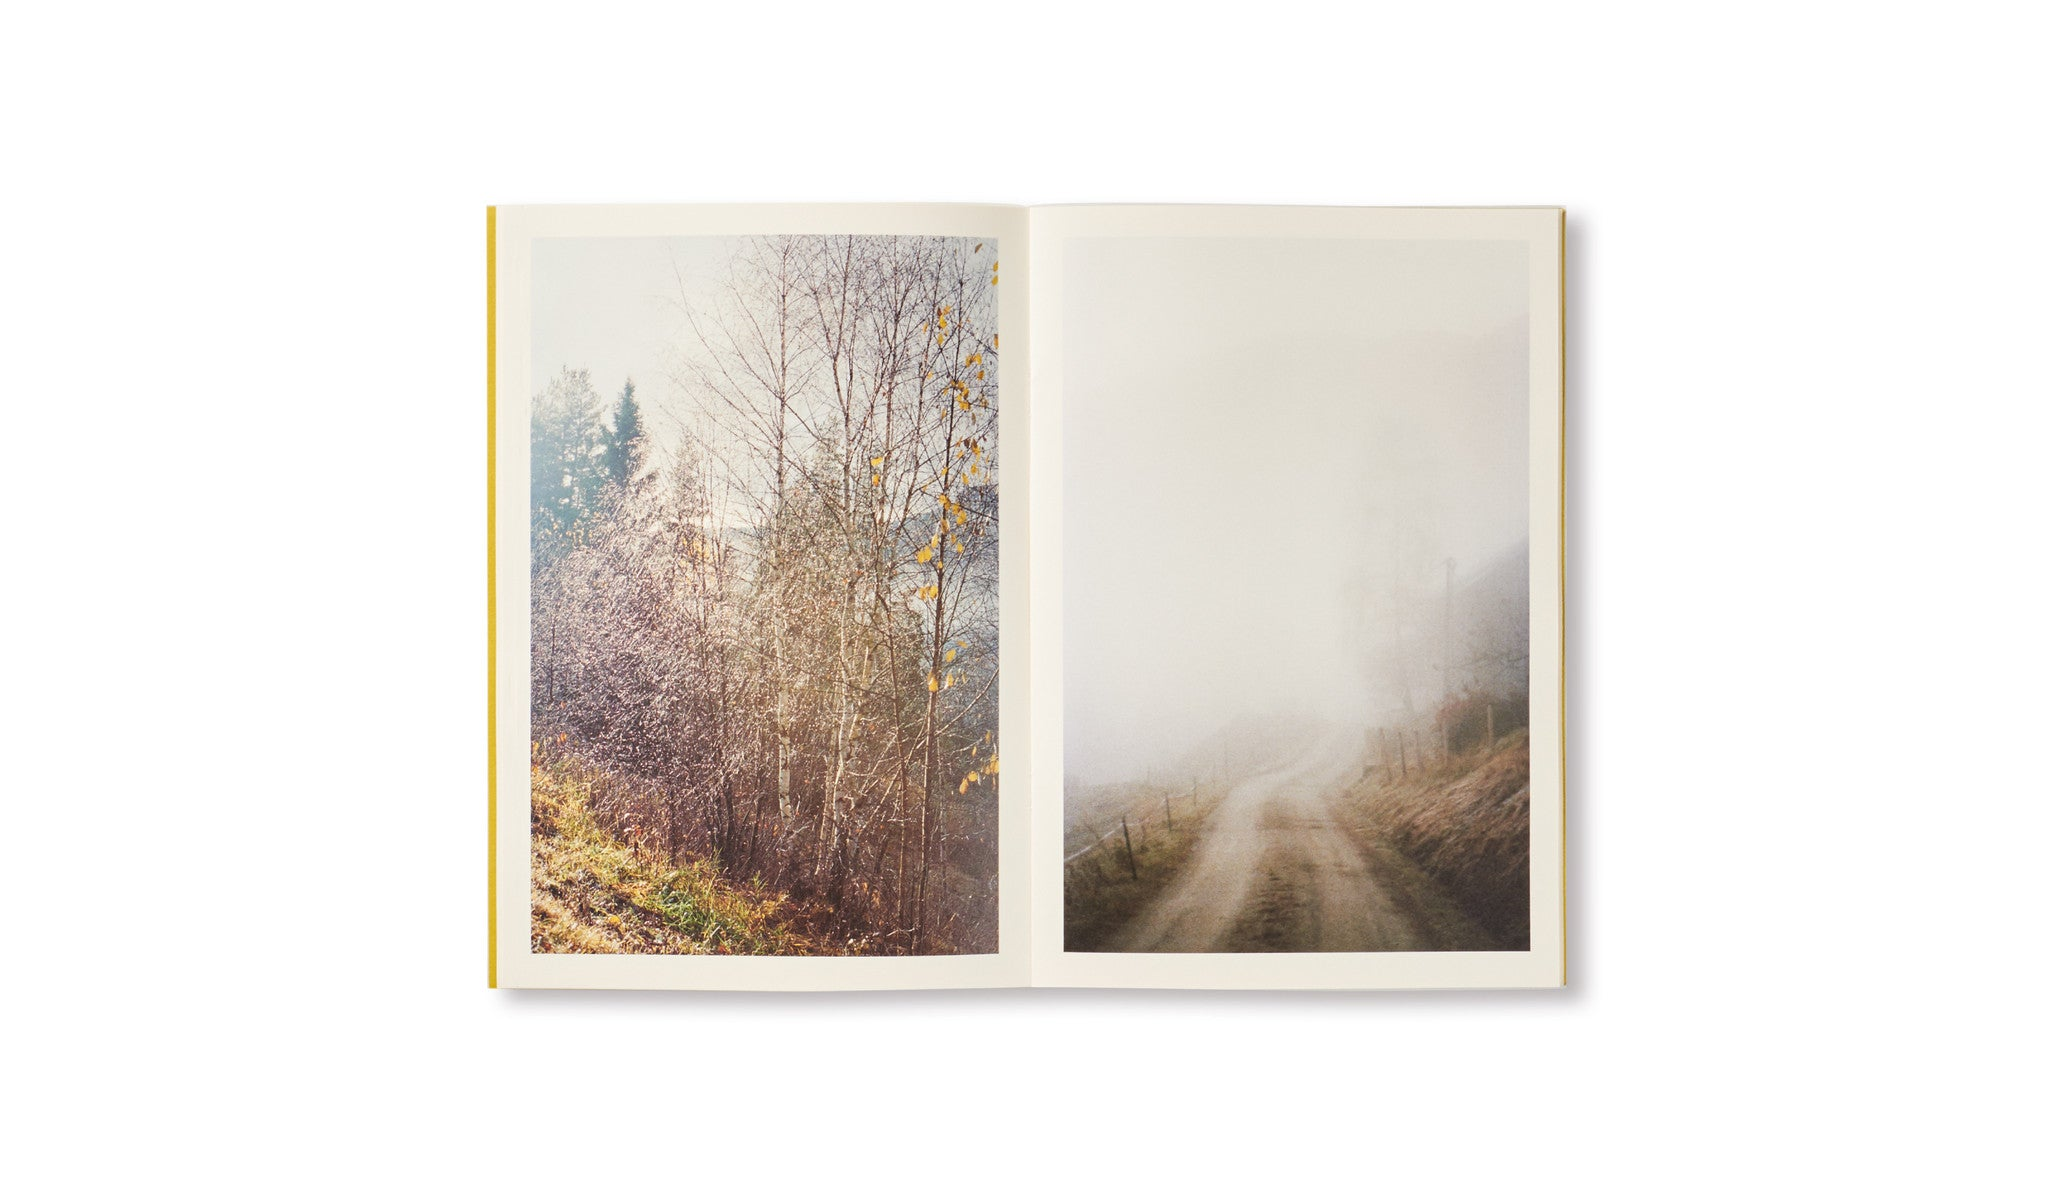 DISTANCE (PICTURES FOR AN UNTOLD STORY) by Ola Rindal [SIGNED]